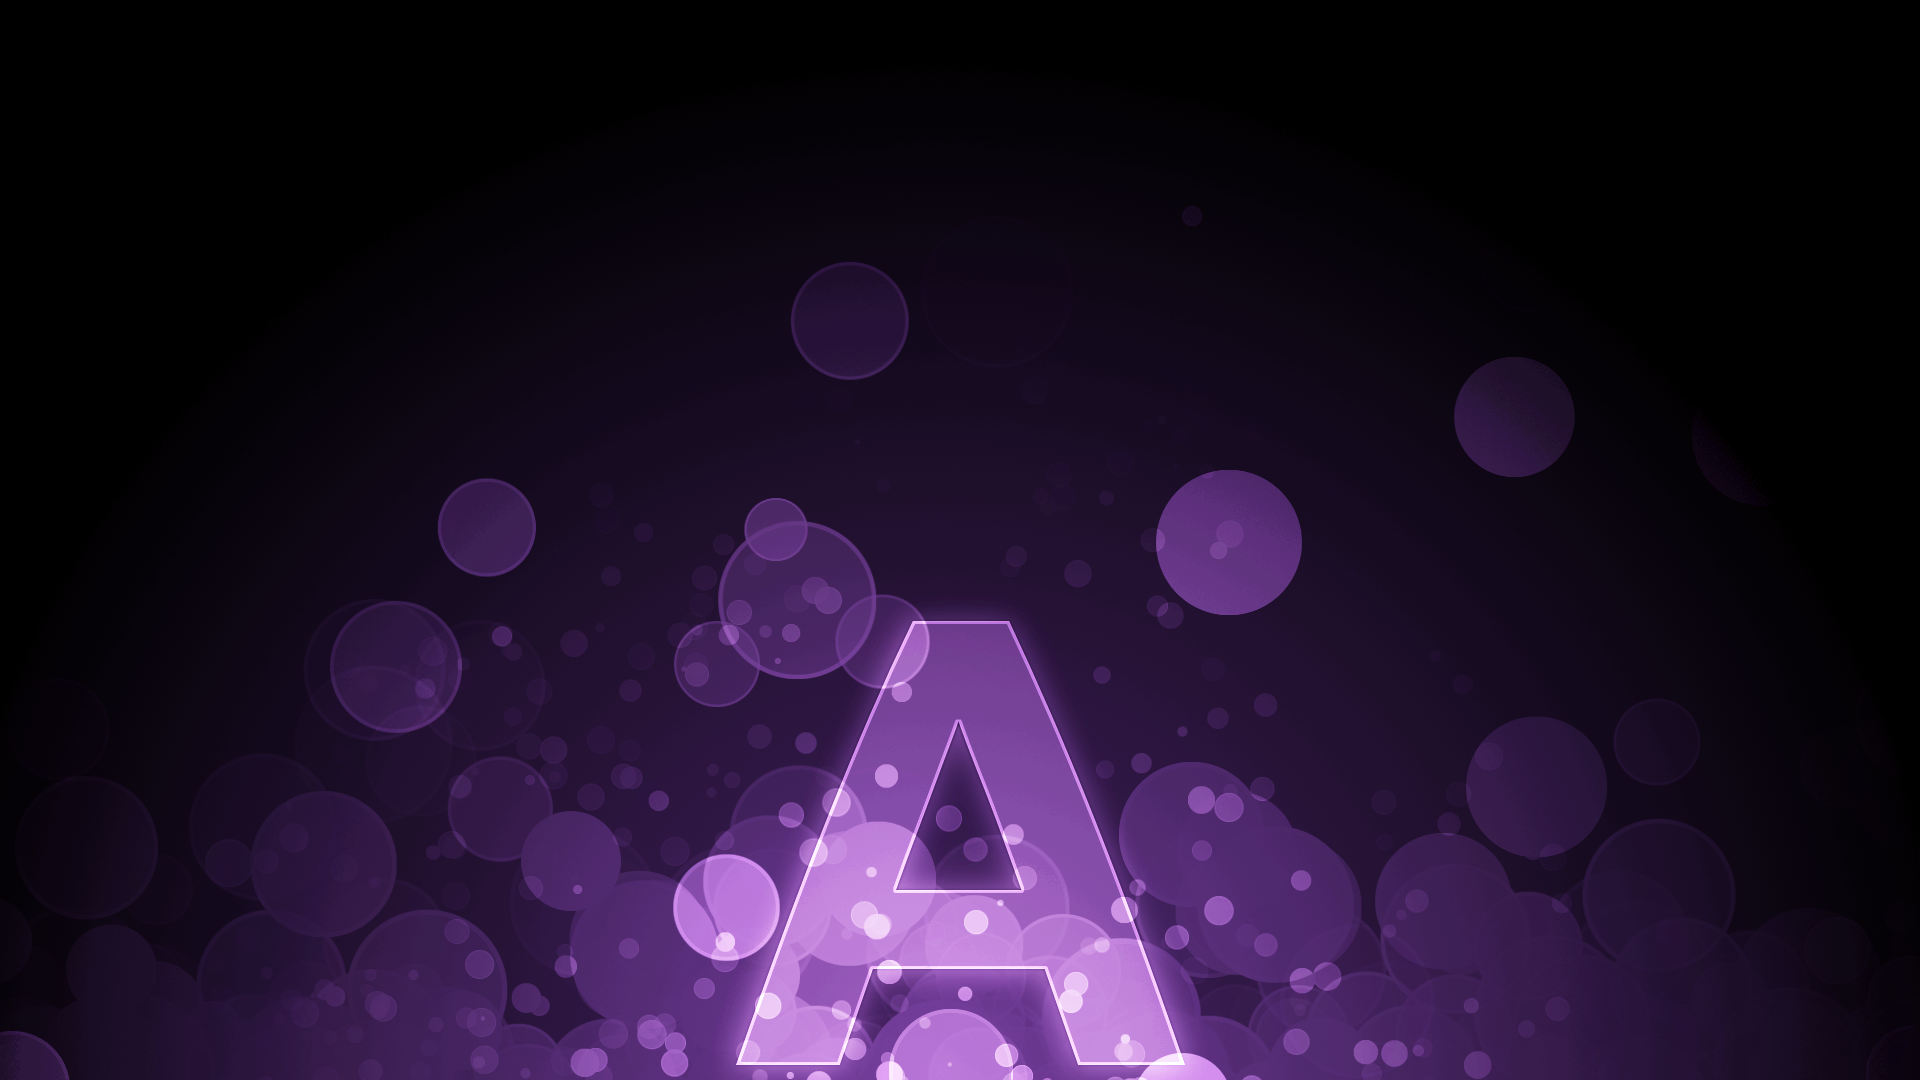 Purple Circles A Wallpaper